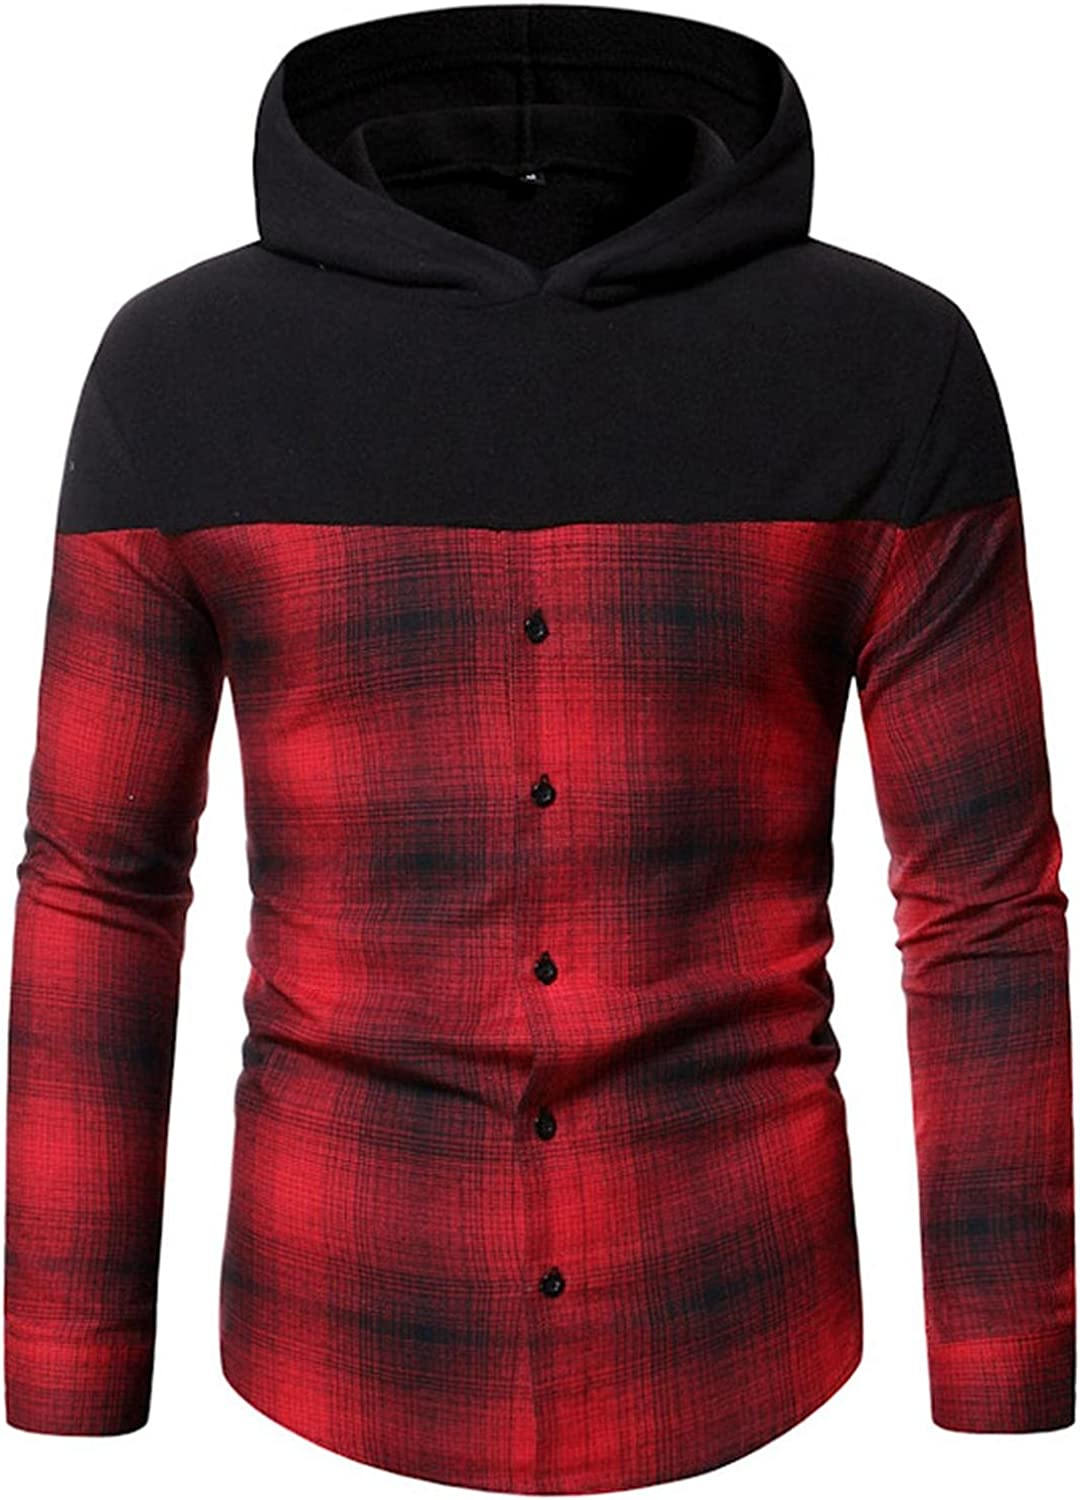 Hoodies for Men,Casual Splicing Hooded Sweatshirt Pullover Plaid Mens Shirts Checked Button Sweatshirt Blouses